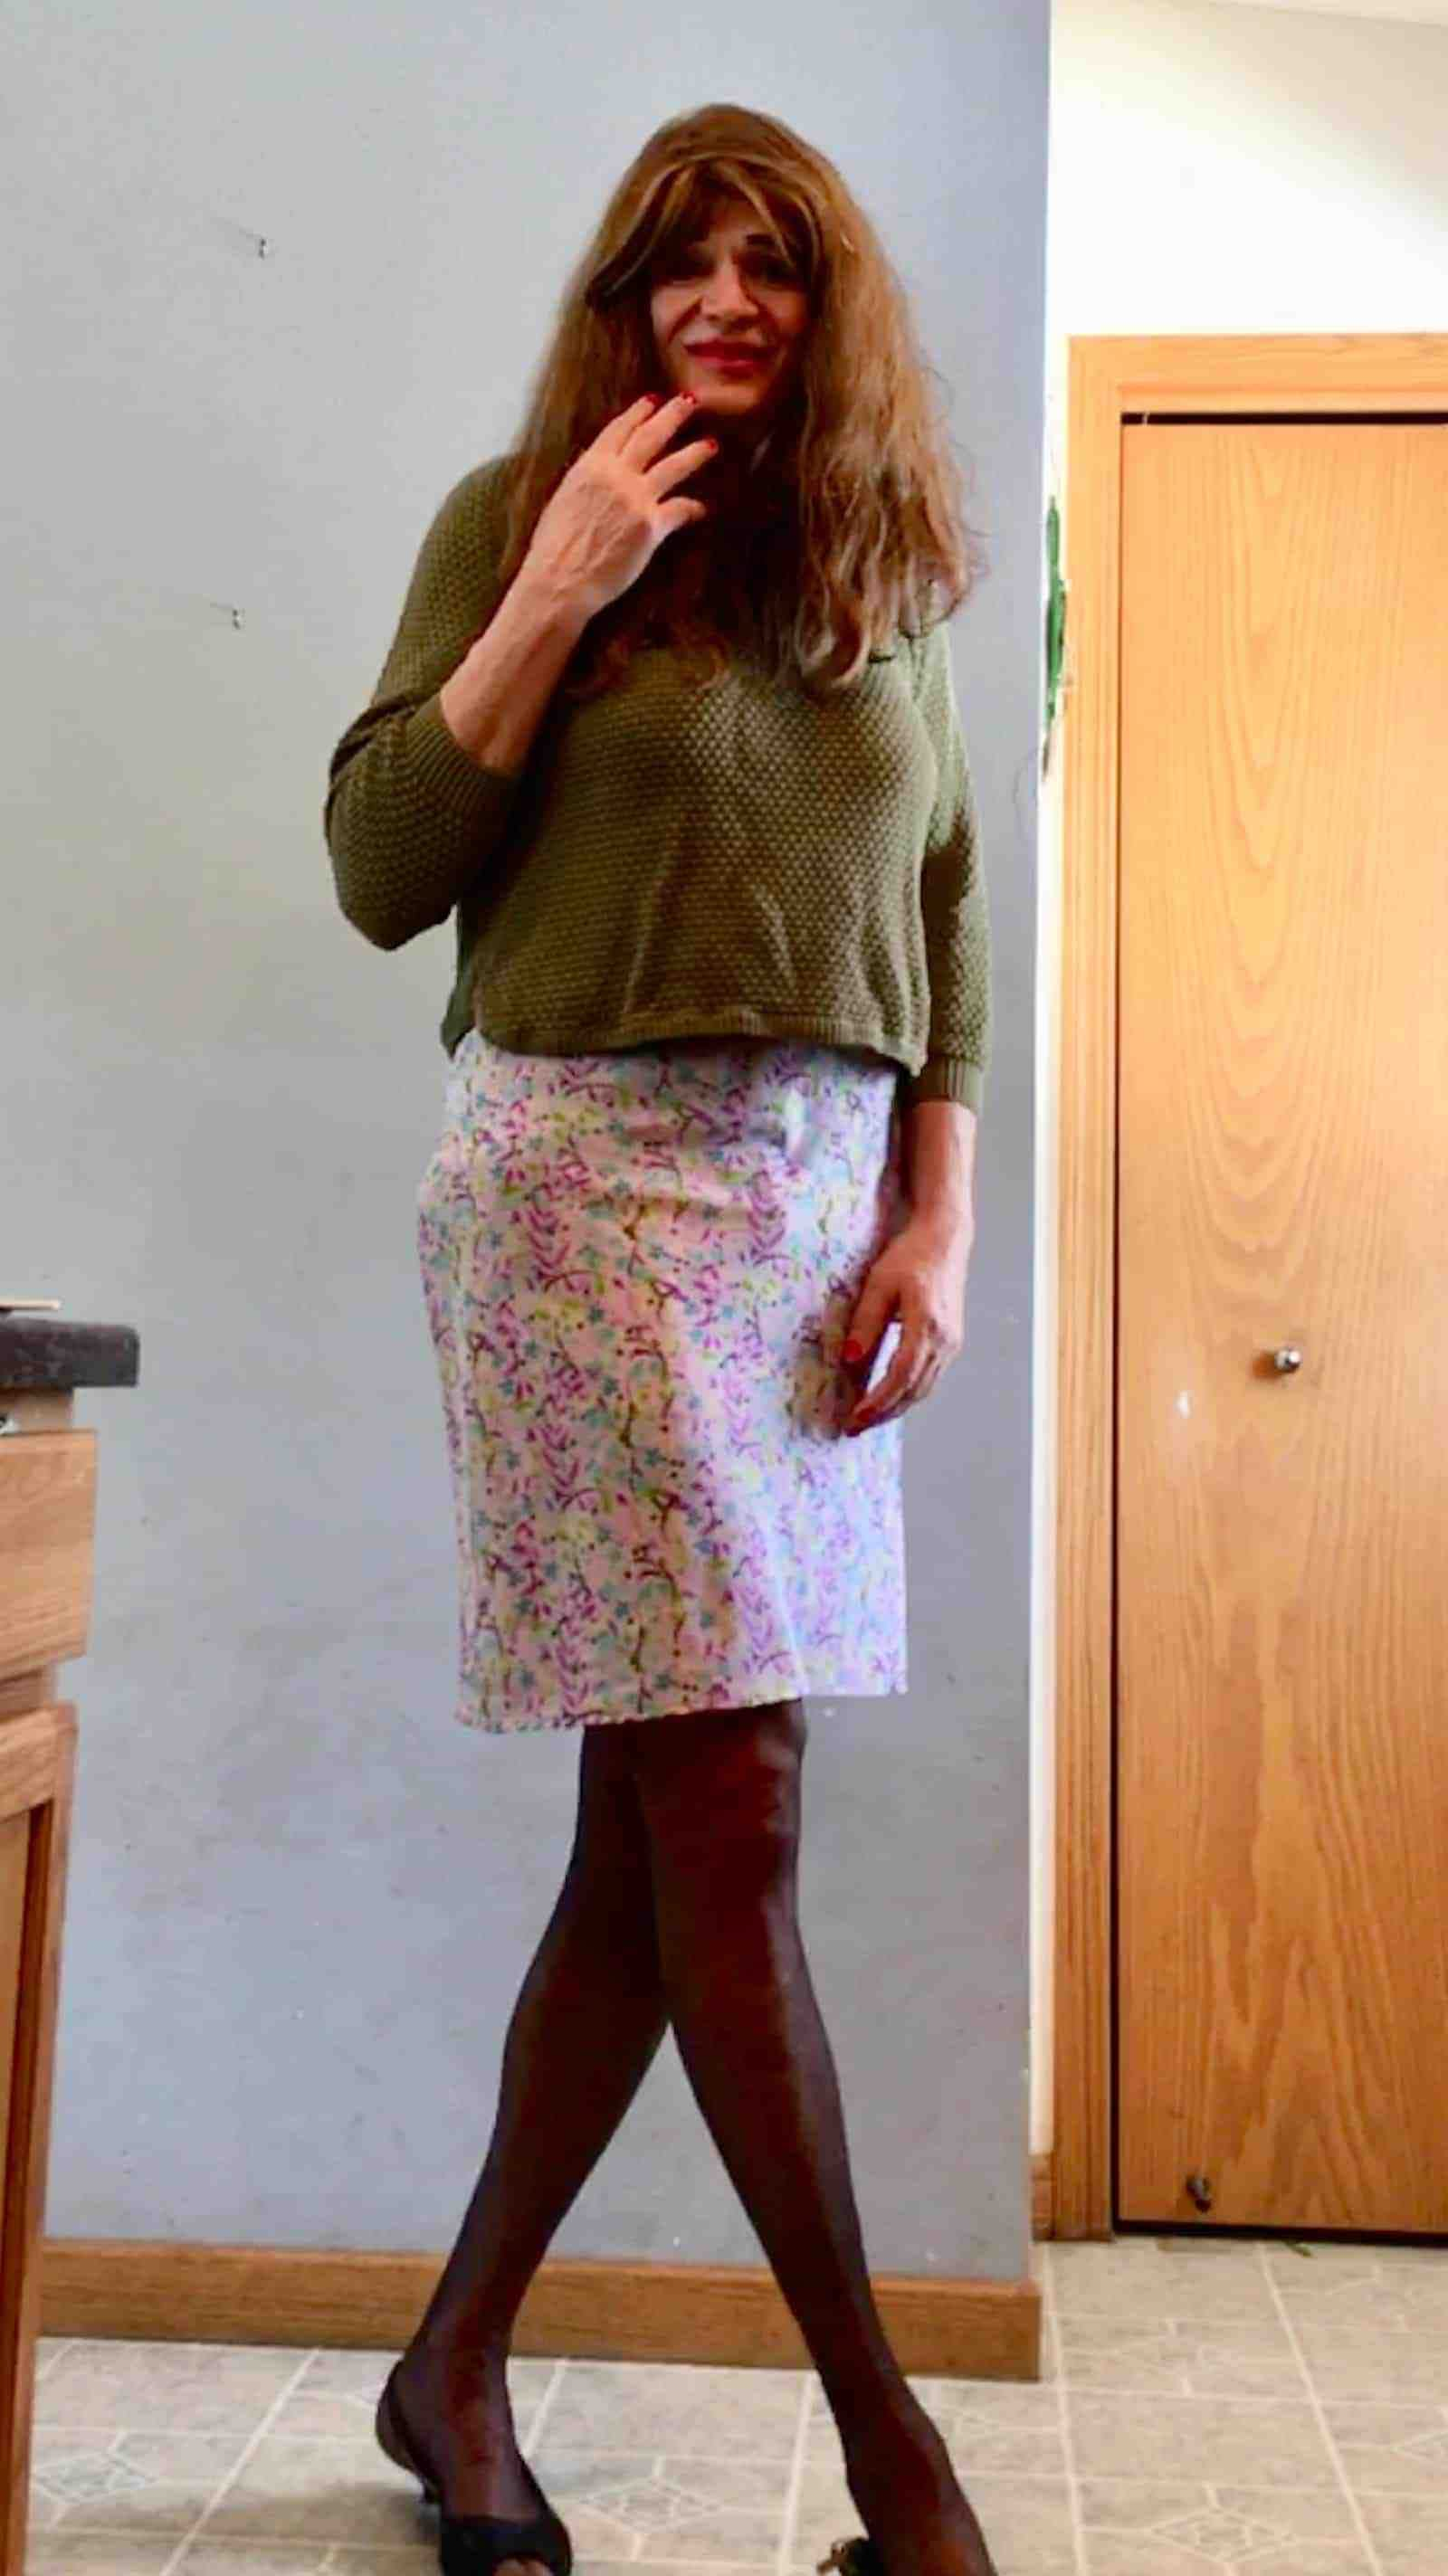 Skirt with black stockings